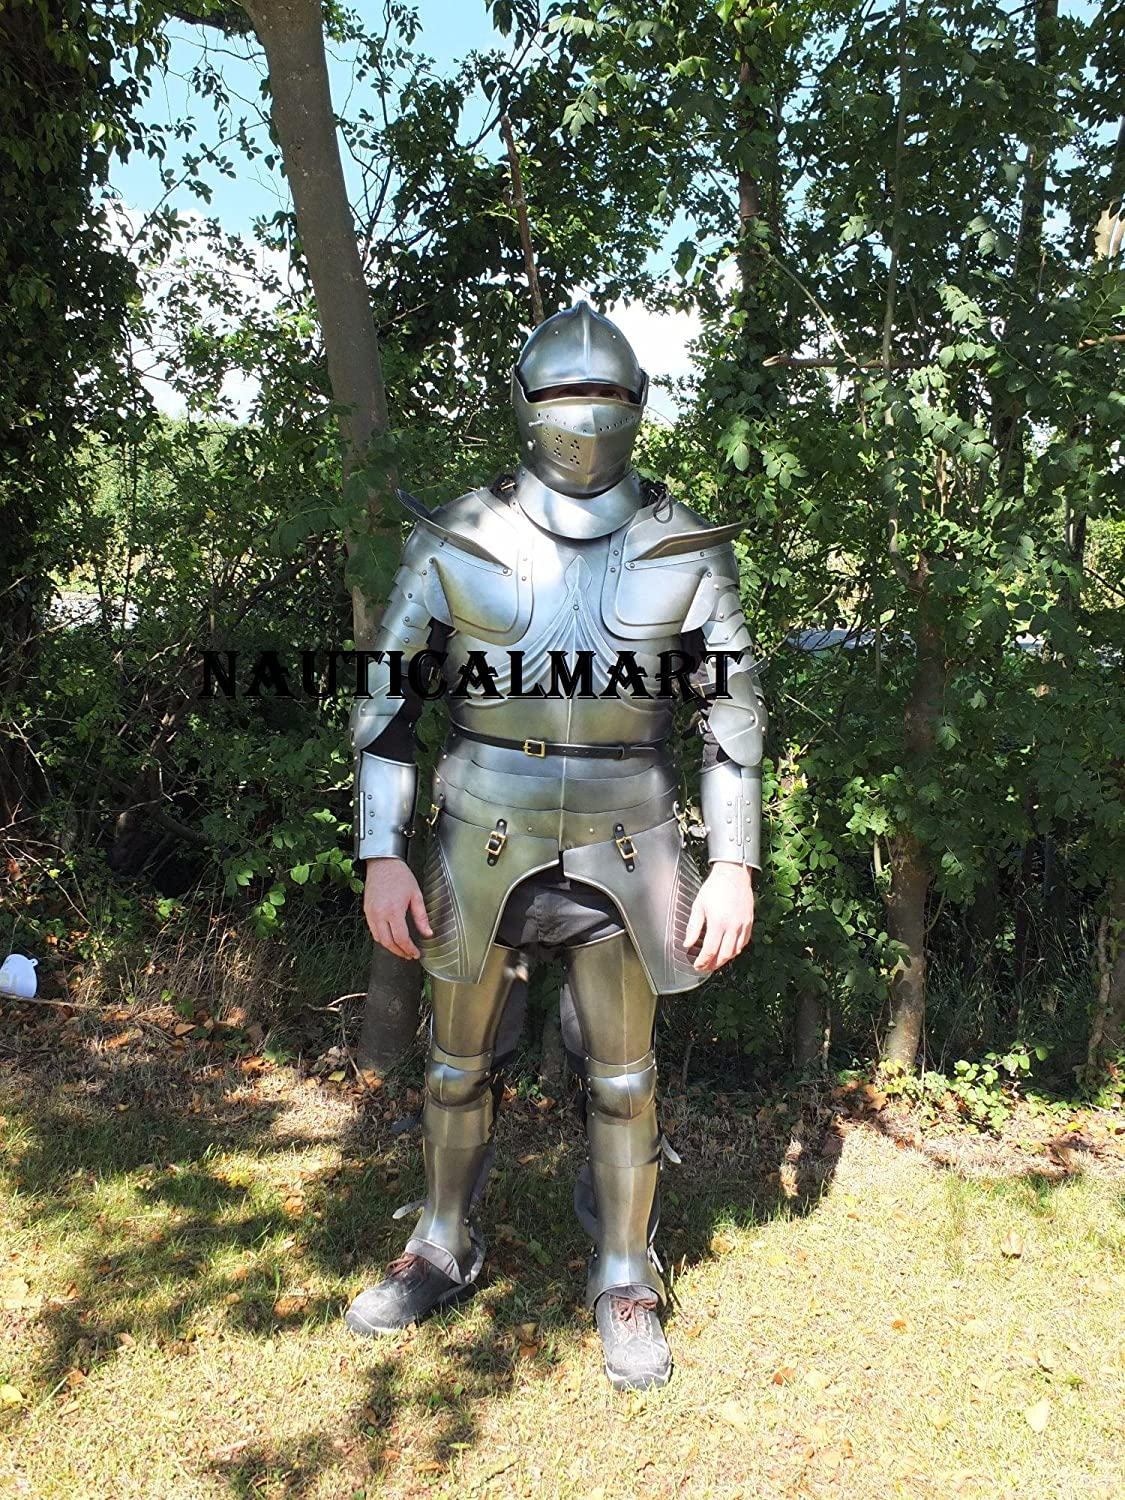 NauticalMart Medieval San Jose Mall Full of Armor Limited time trial price Suit